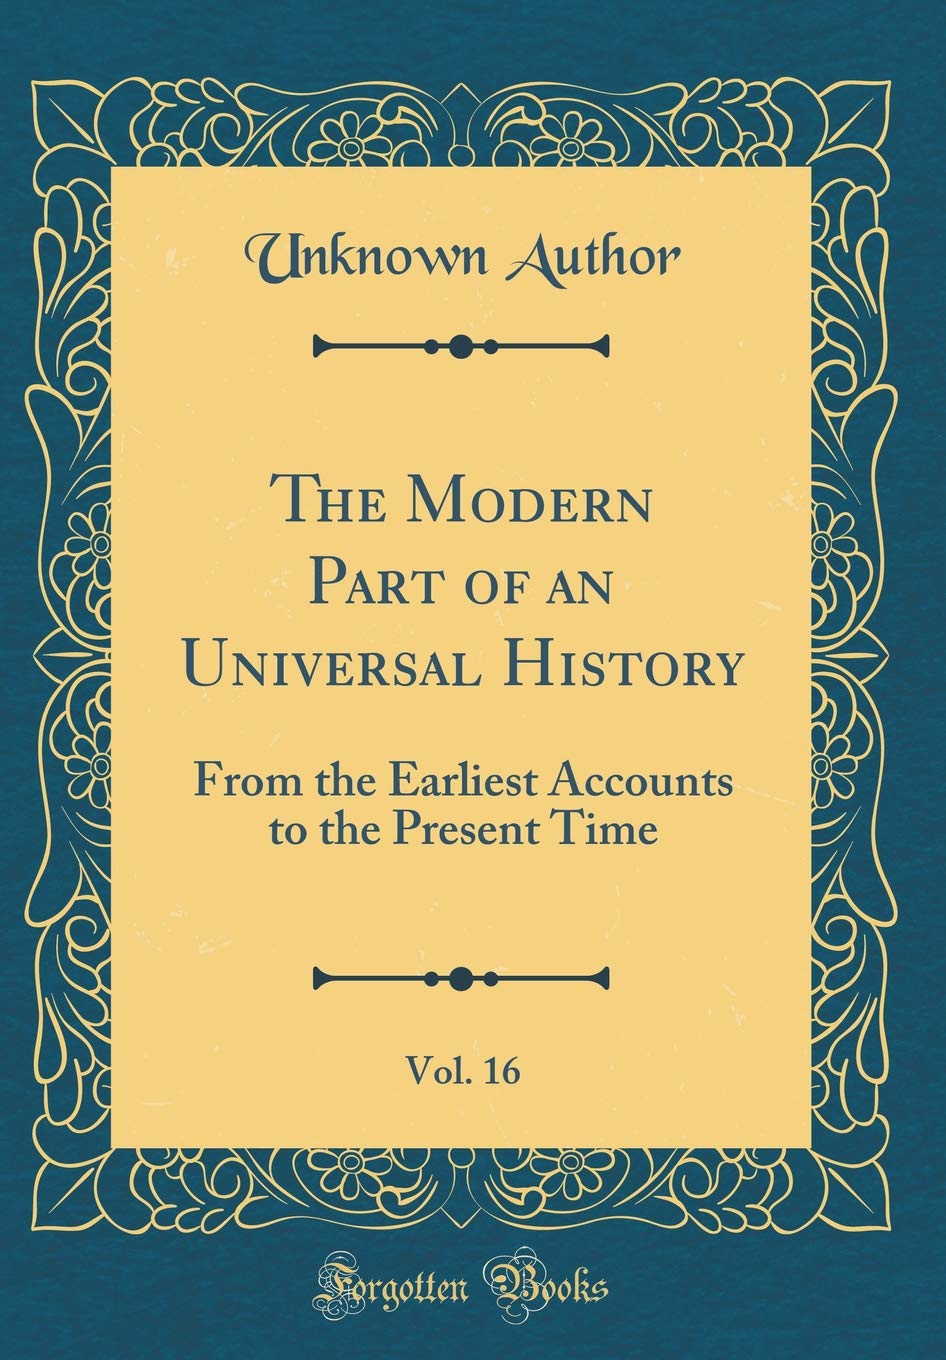 The Modern Part of an Universal History, Vol. 16: From the Earliest Accounts to the Present Time (Classic Reprint) pdf epub